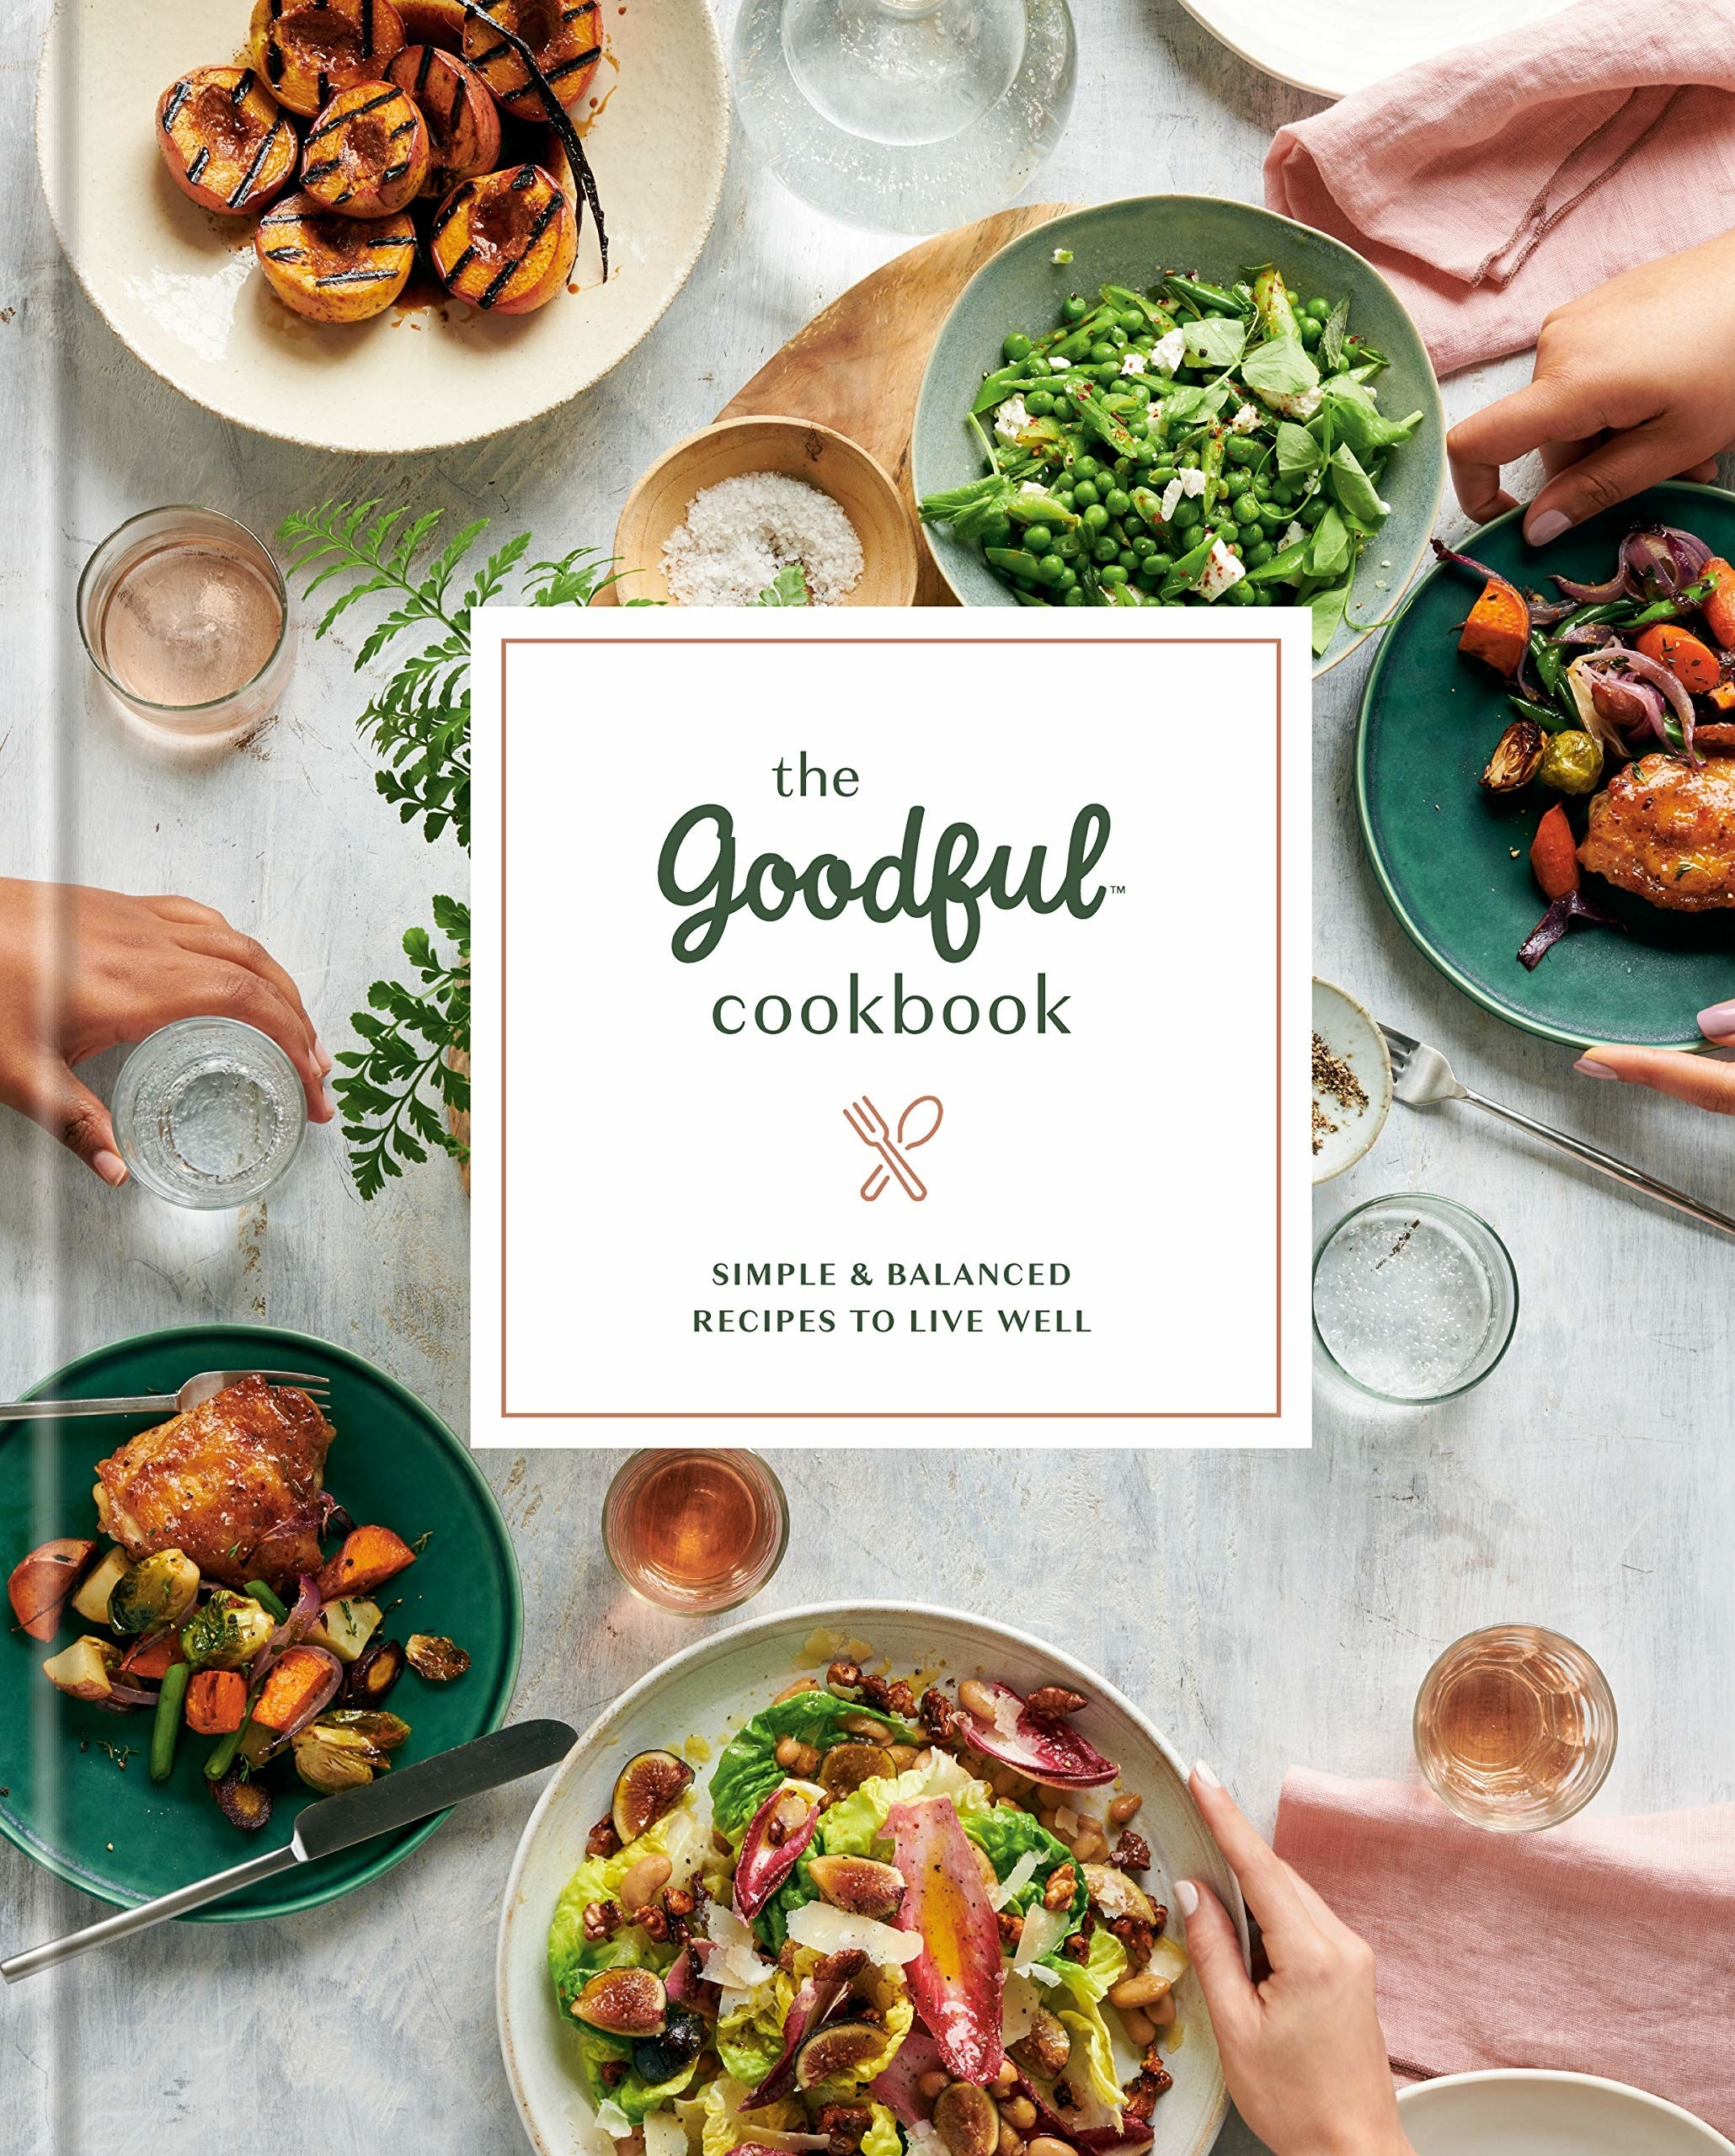 Book cover with table full of foods